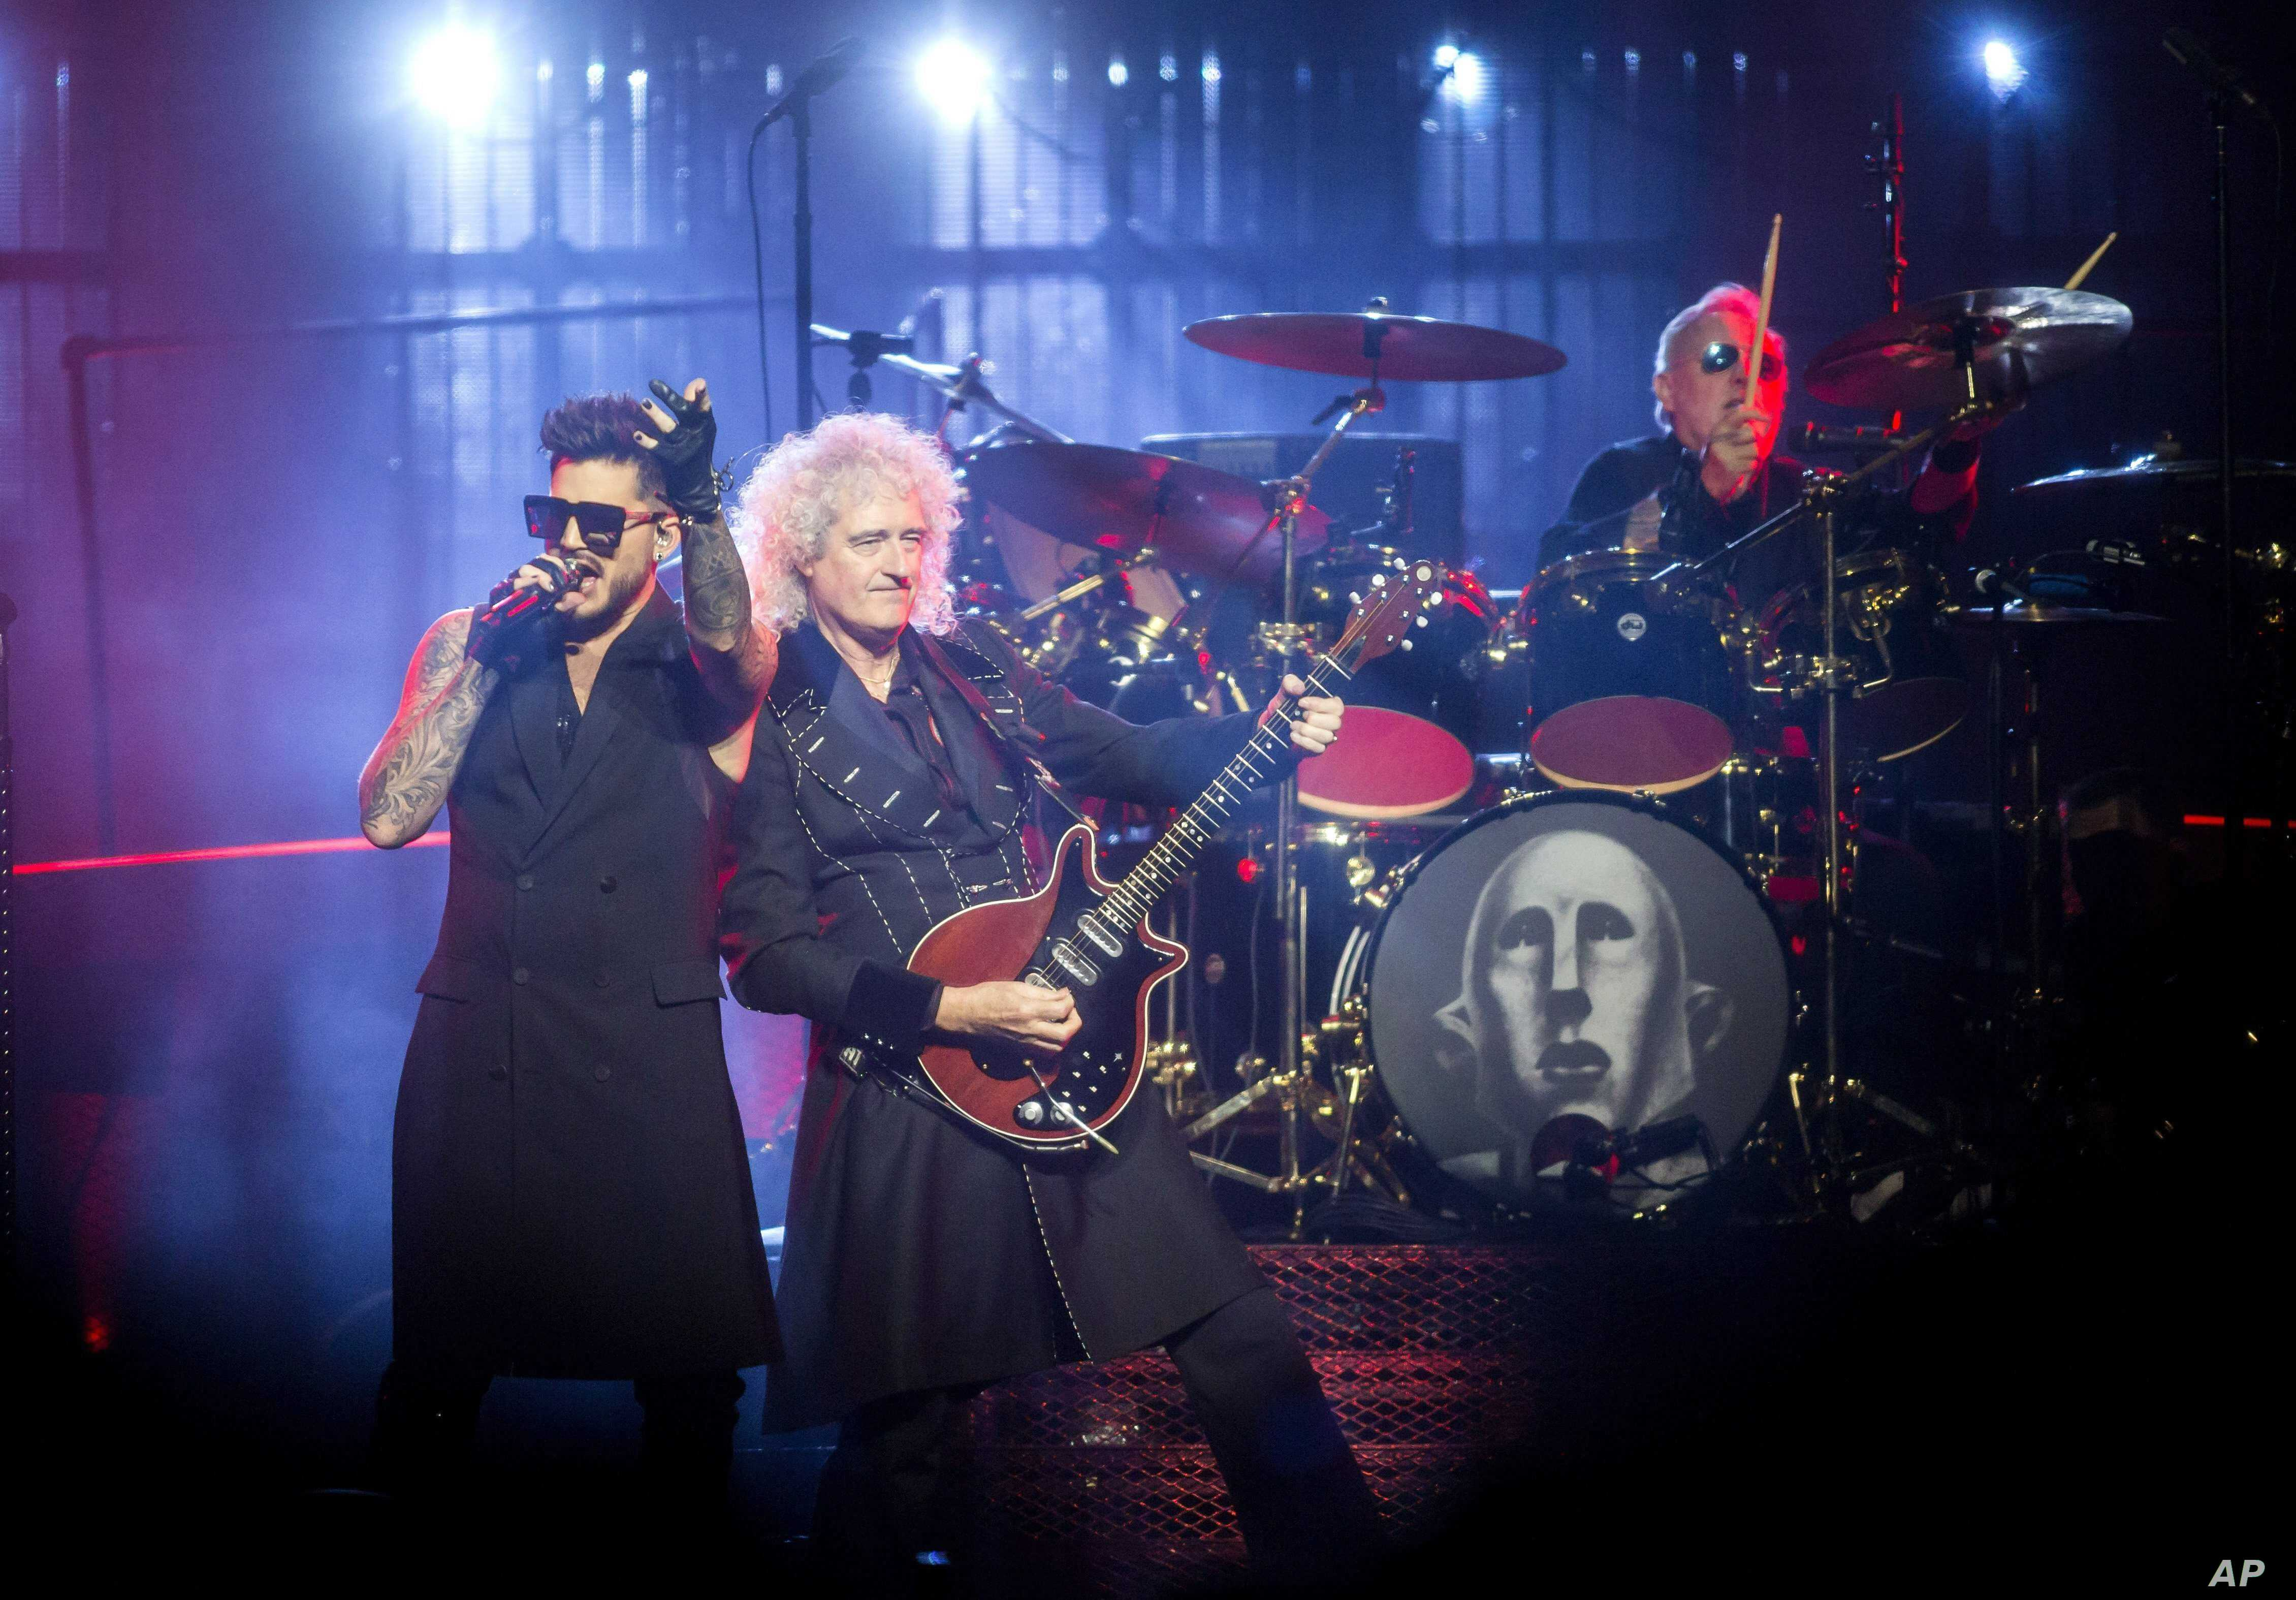 Queen to Rock Oscars With Live Performance | Voice of